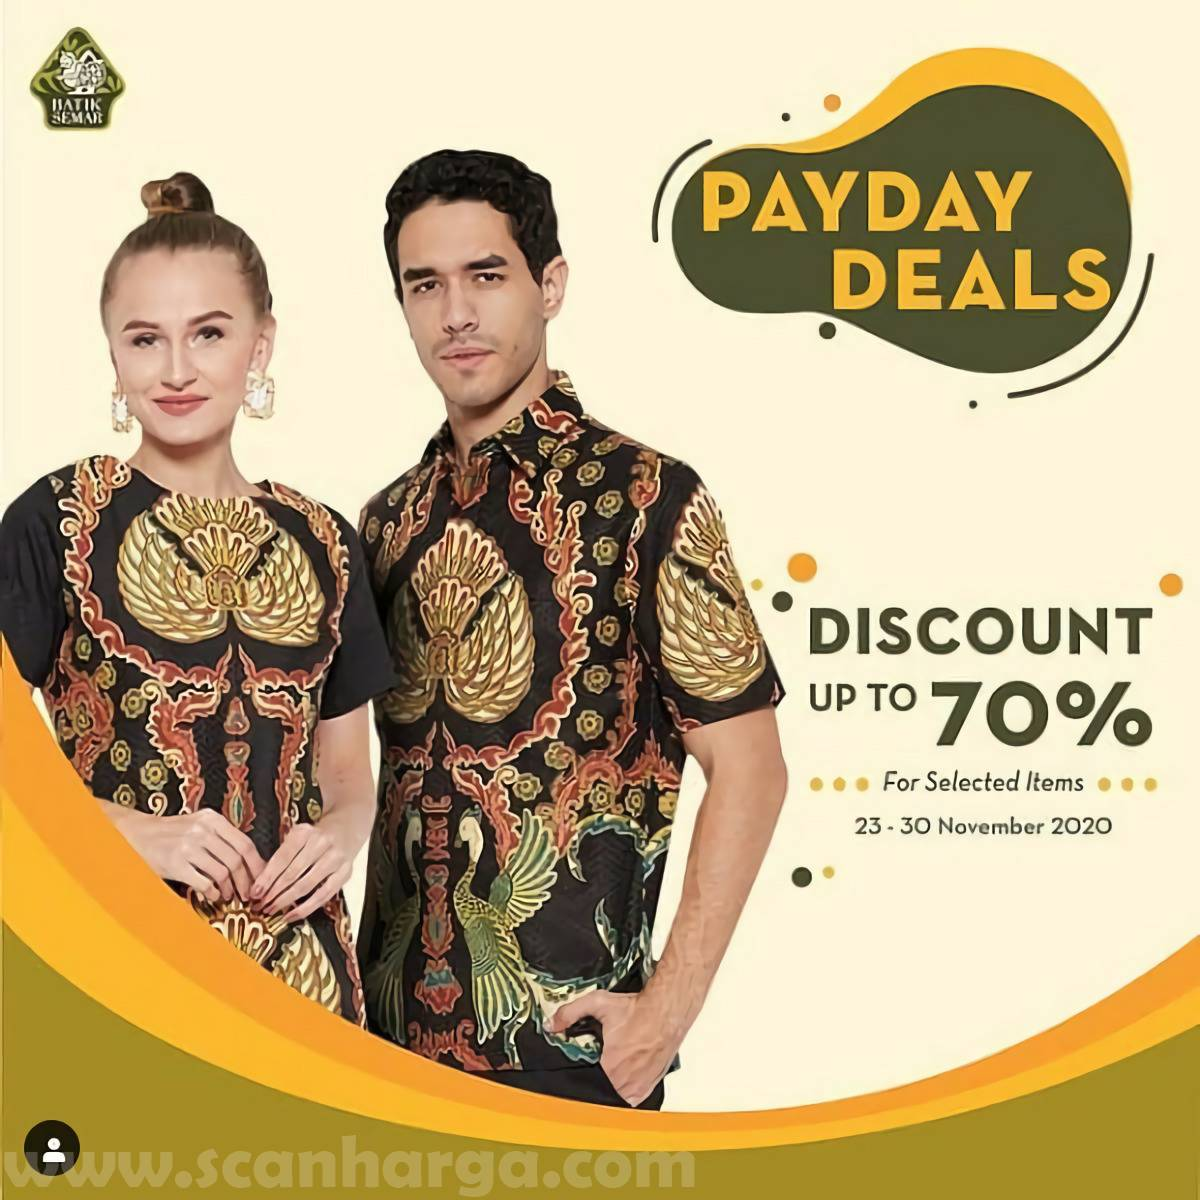 Batik Semar Promo Payday Deals Disc up to 70% for Selected Items